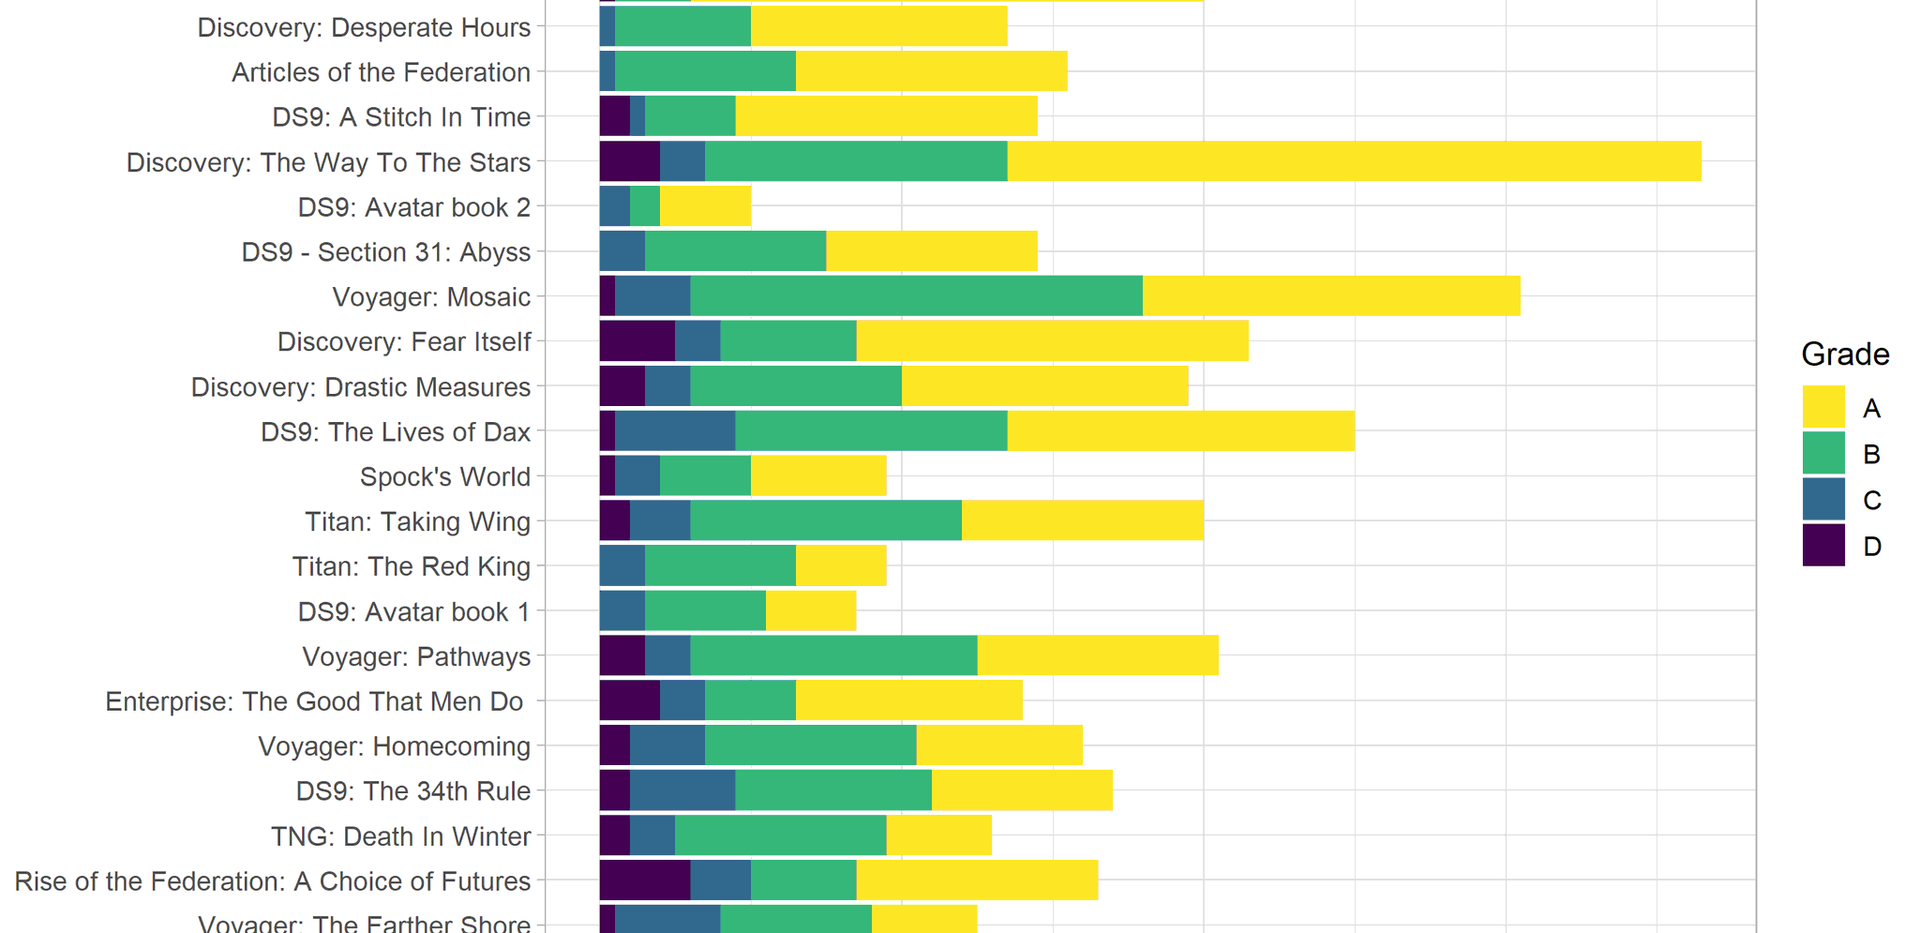 Votes for novel grades, ordered by average score (as of May 2019)